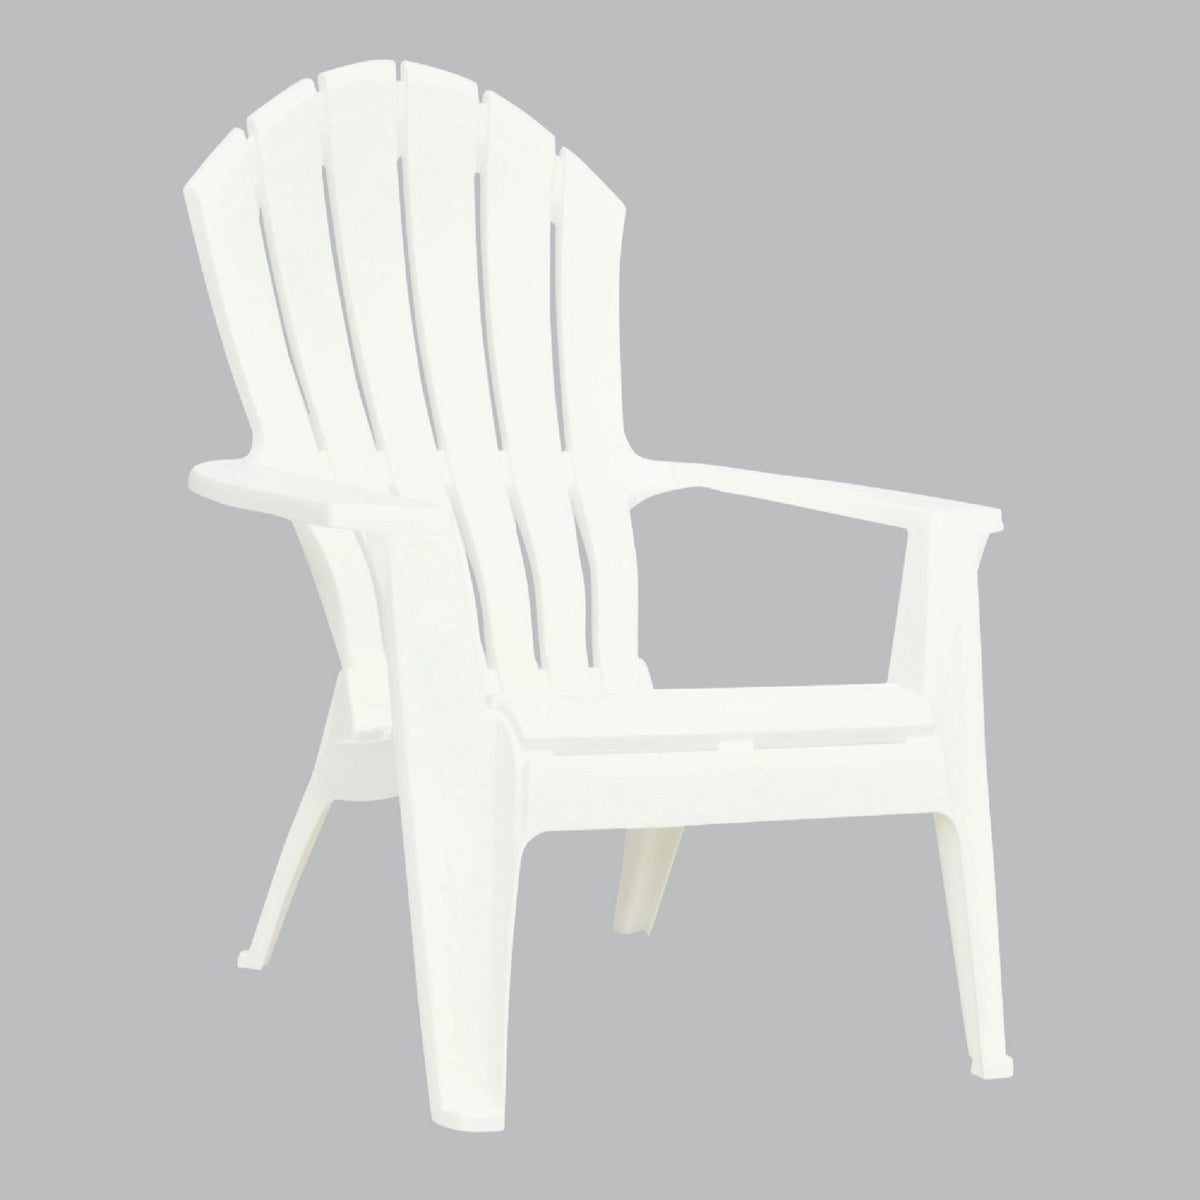 WHITE ERGO ADIRONDACK - 8371-48-3700 by Adams Mfg Patio Furn